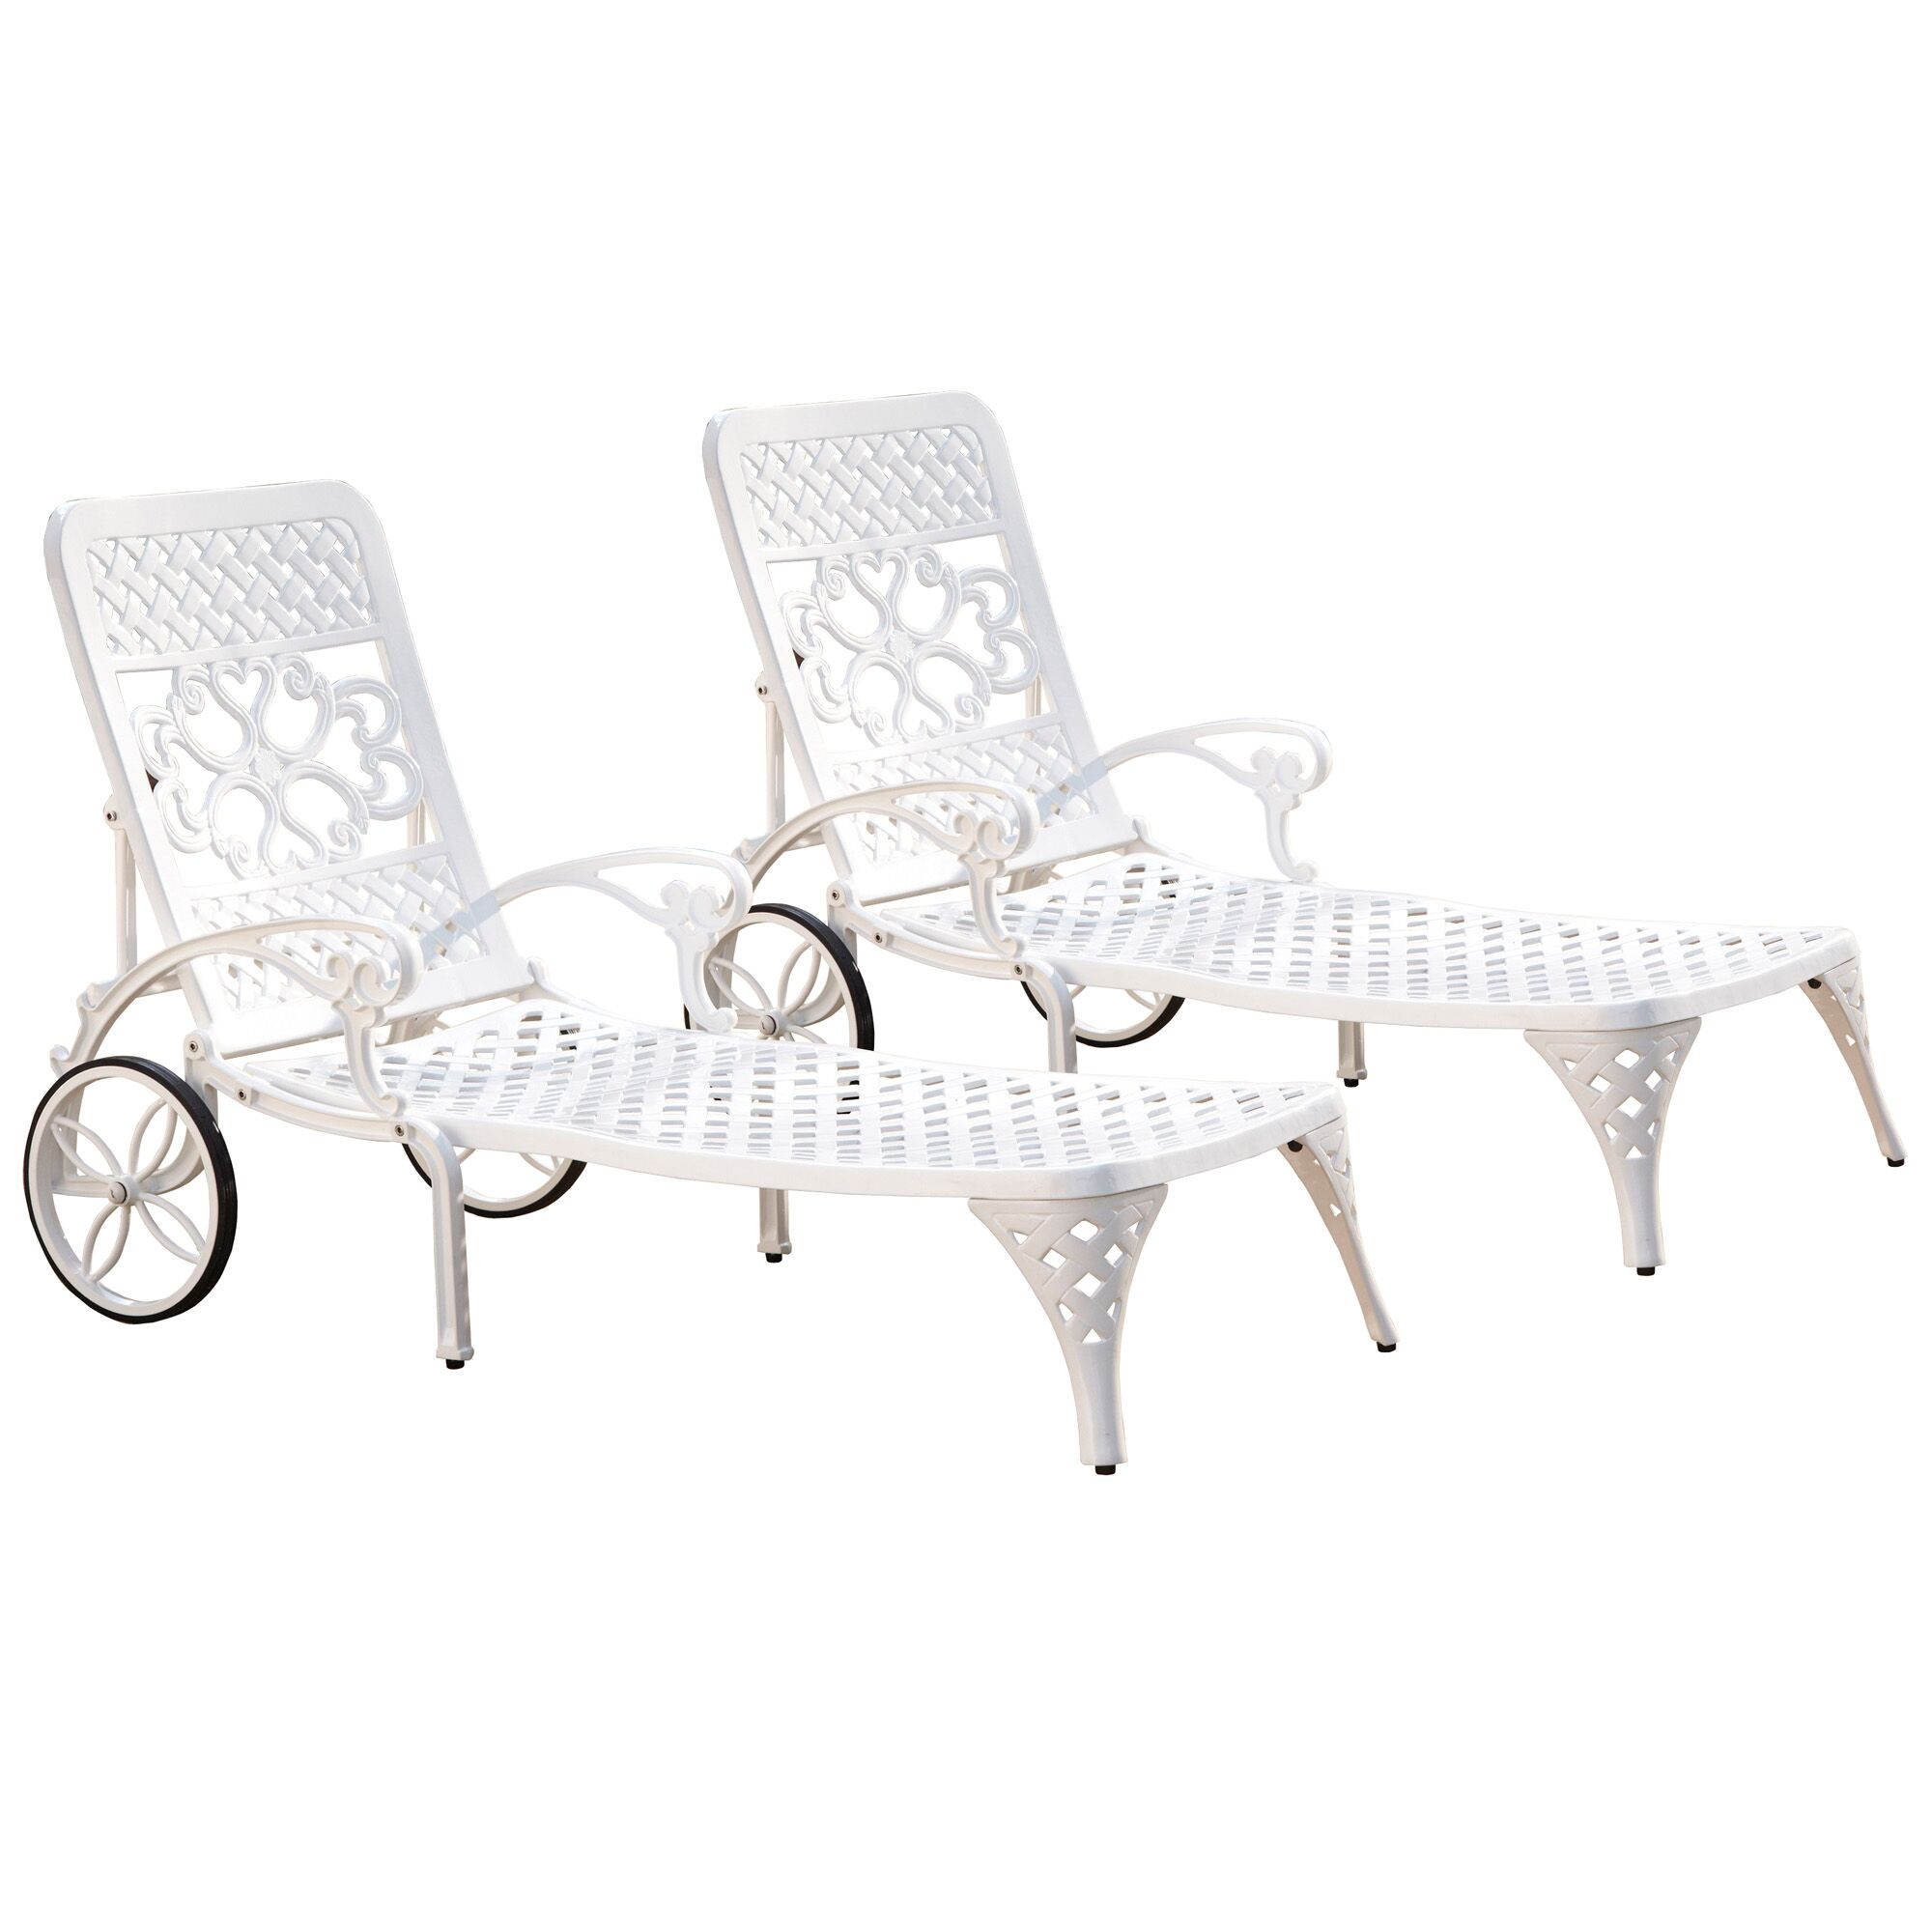 Van Glider Chaise Lounge Color: White